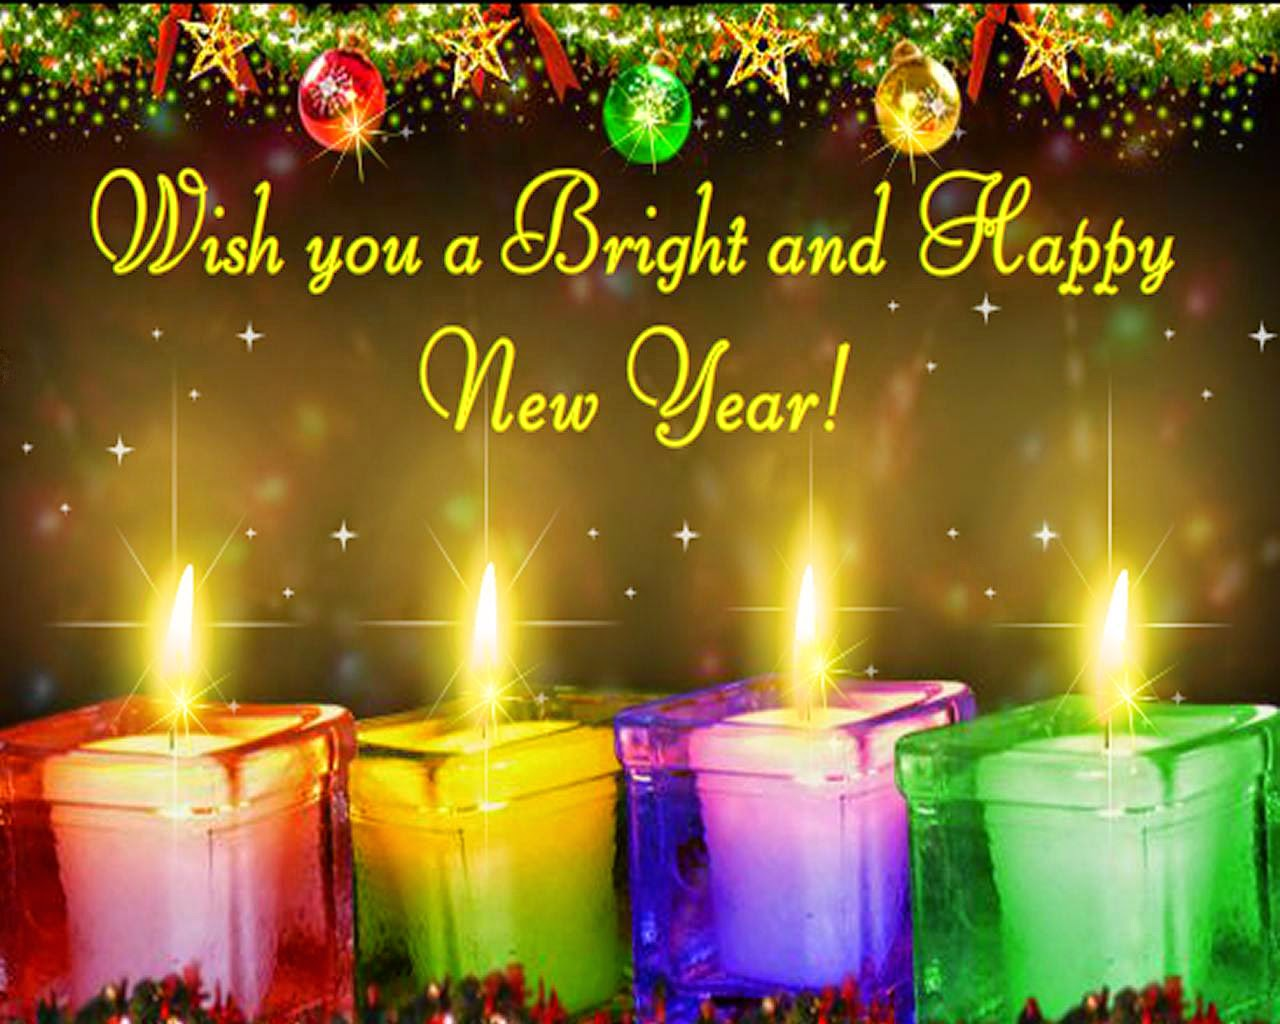 30 Best Happy New Year Pictures 2020 in HD   Happy New Year 2020 1280x1024